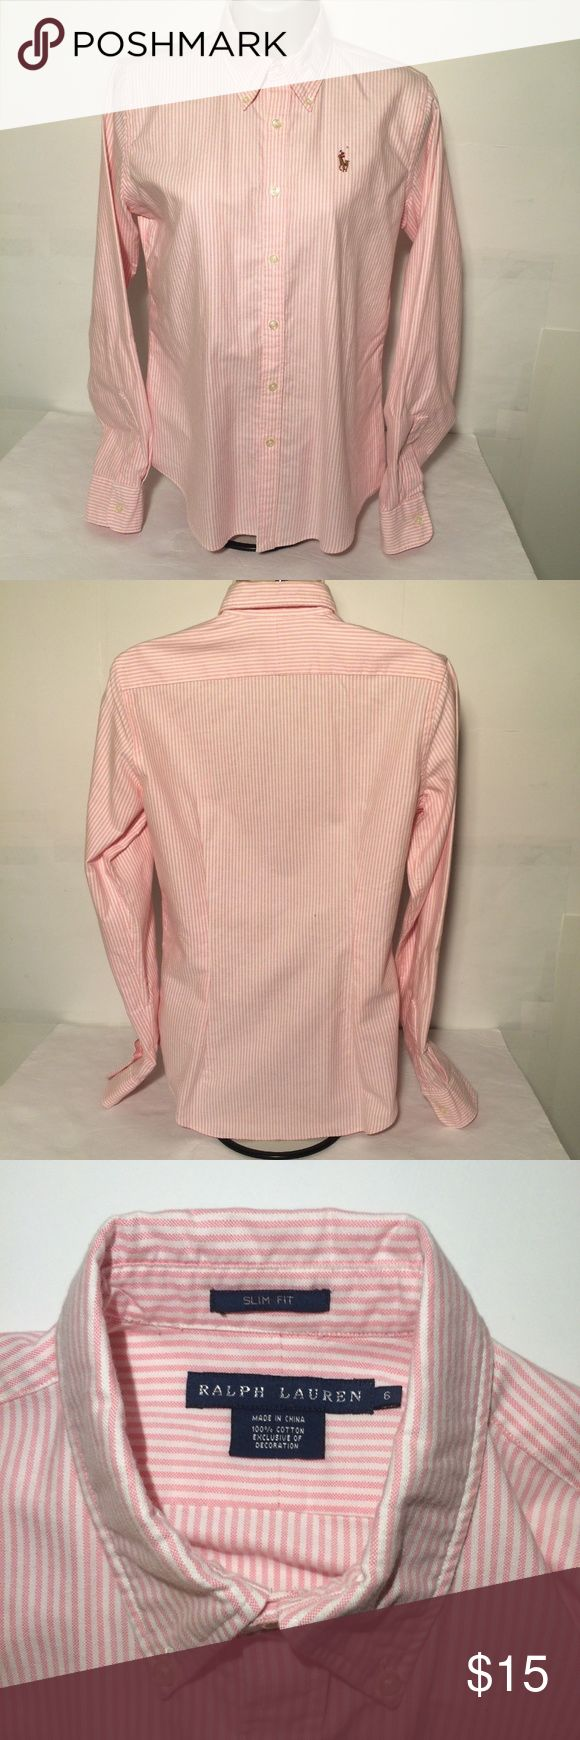 Polo Ralph Lauren Slim Fit oxford shirt size 6 Polo Ralph Lauren Ladies shirt. LADIES Oxford Size 6. Pink/white striped with long sleeves. Button down collar. Slim fit. Pony logo left front. 100% cotton.  Excellent condition with no rips stains or tears. Polo by Ralph Lauren Tops Button Down Shirts